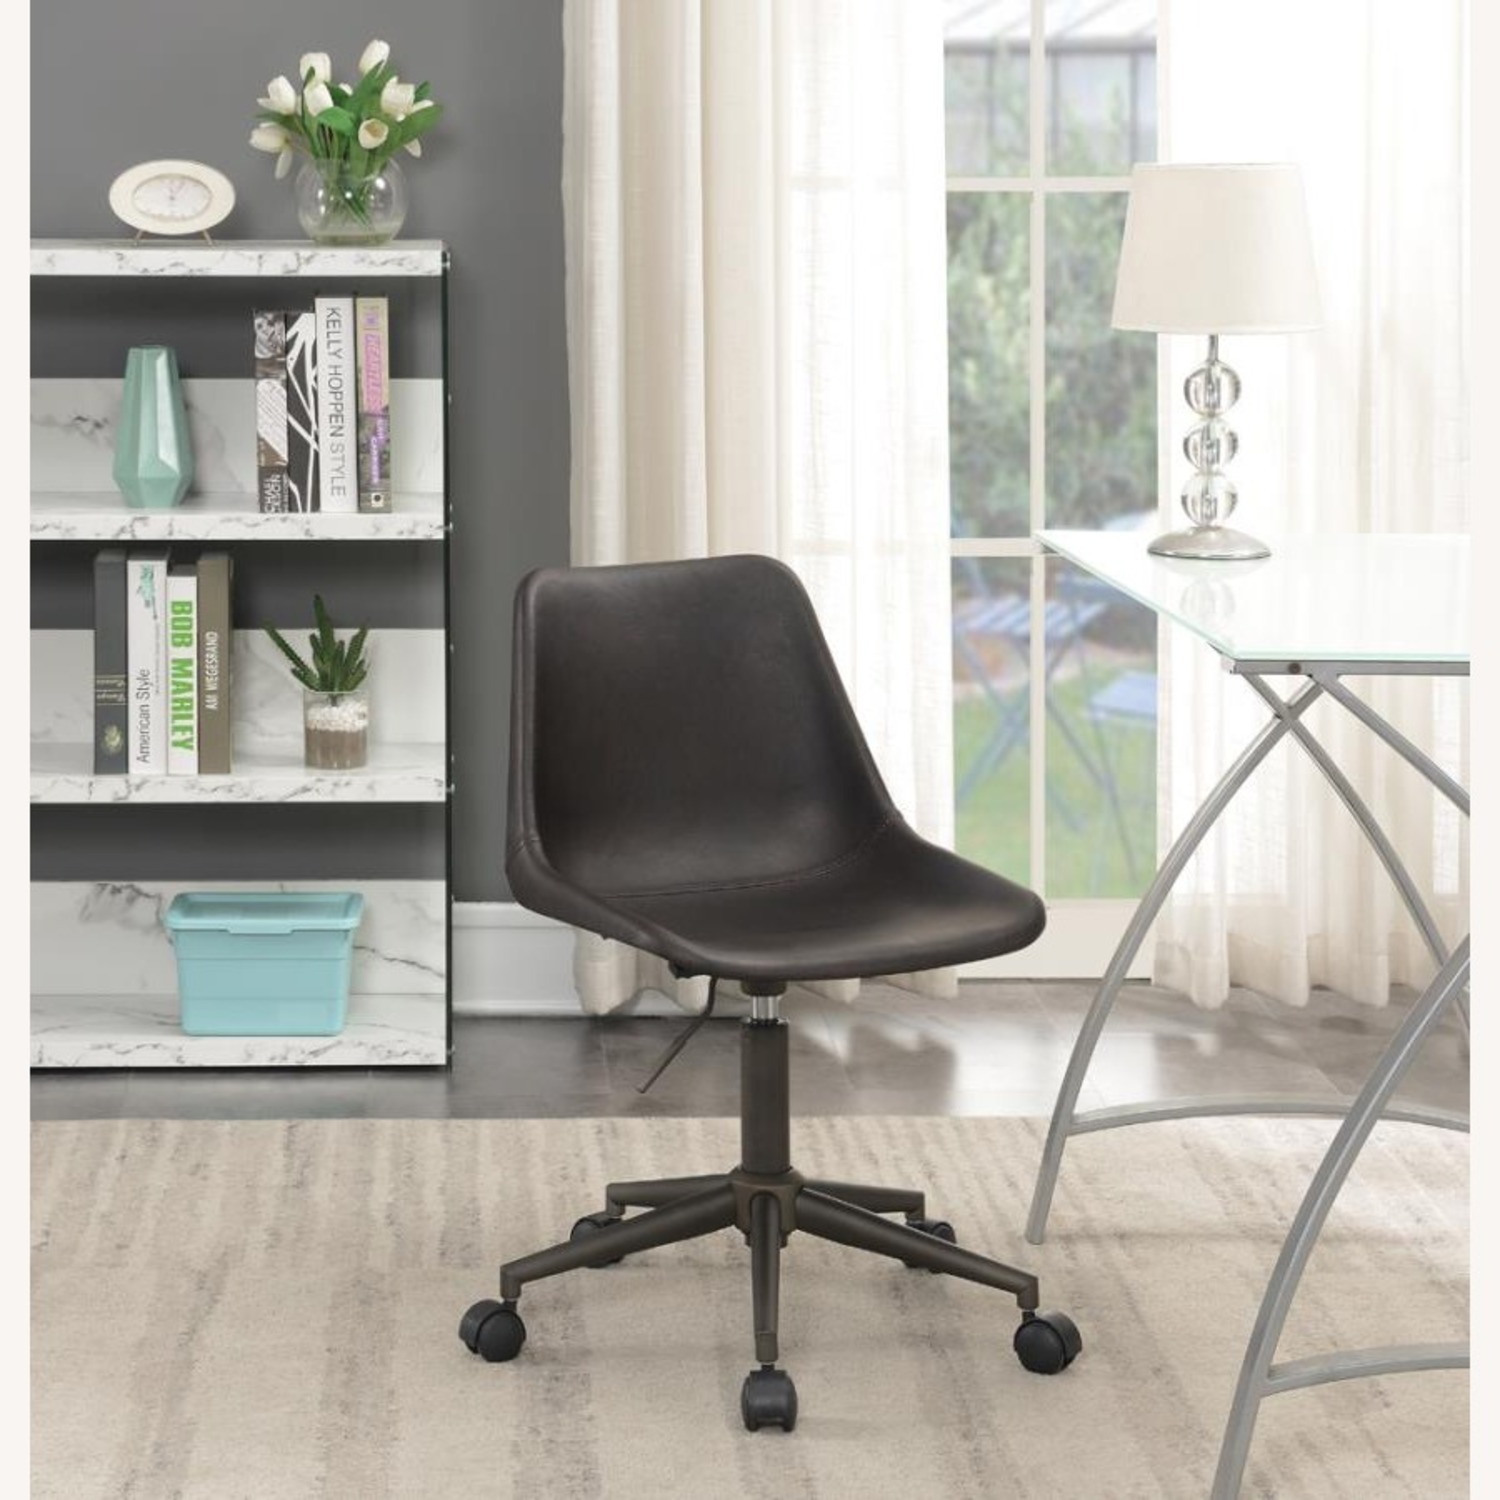 Office Chair In Brown Leatherette & Bronze Base - image-5